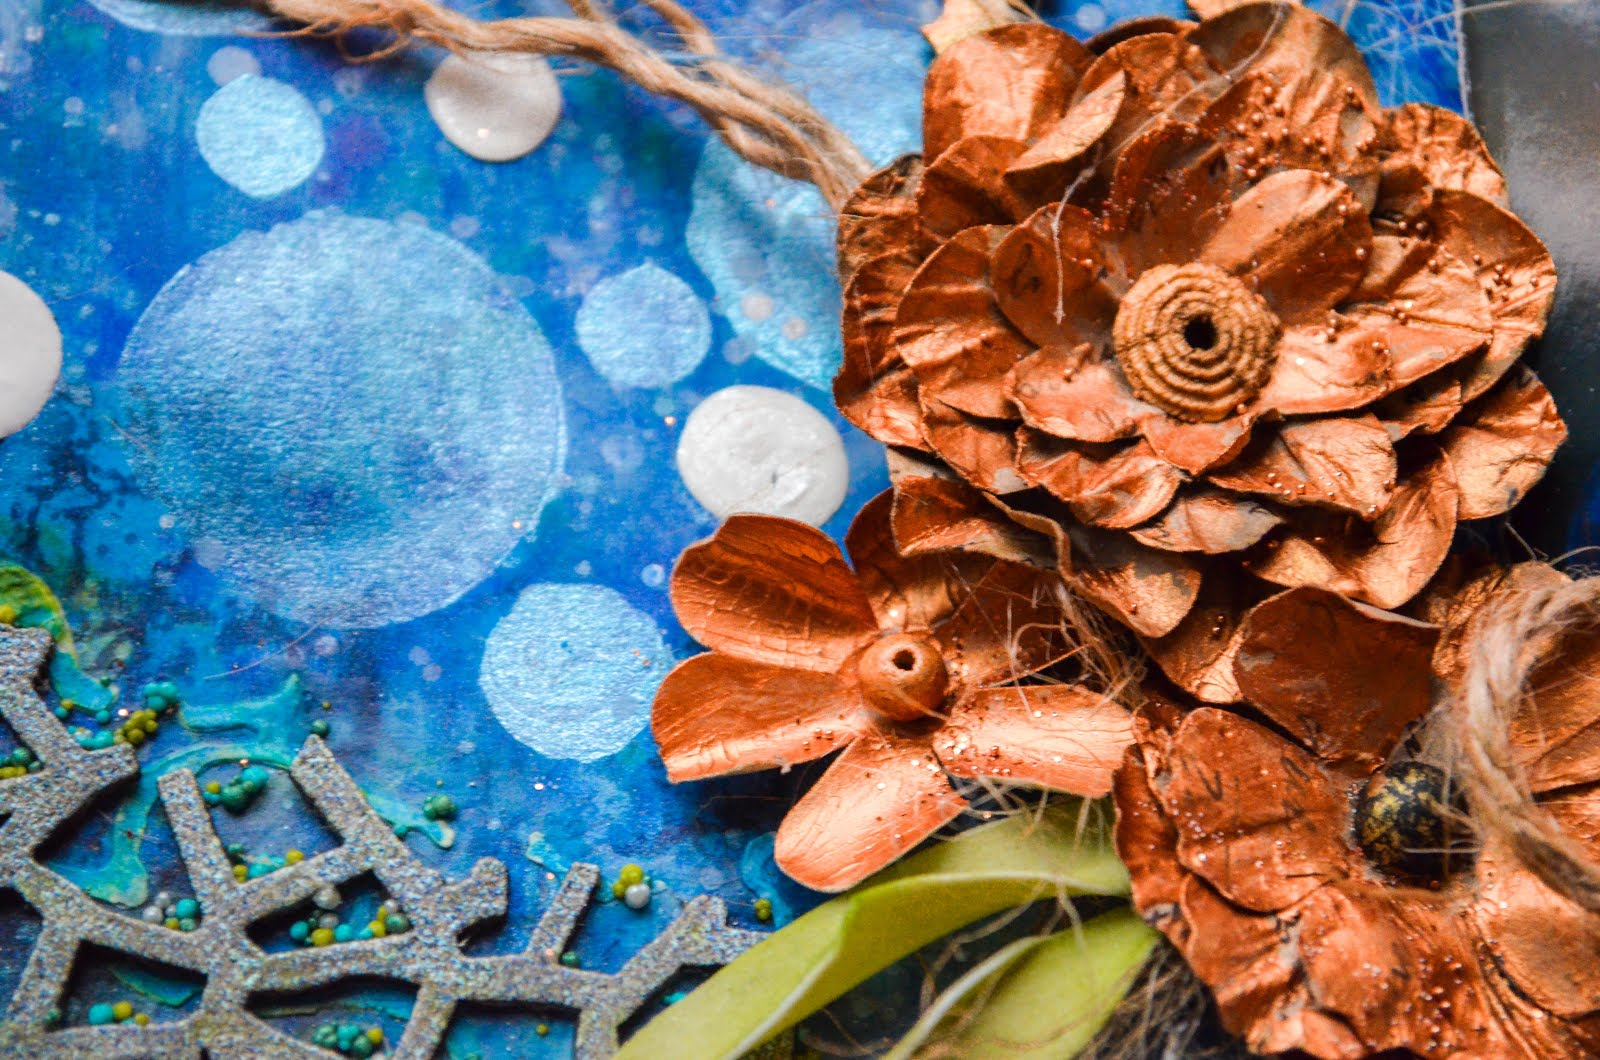 Nautical steampunk mixed media layout in blue and copper with bubbles, chipboard, cheesecloth, and iridescent medium with beads and prills